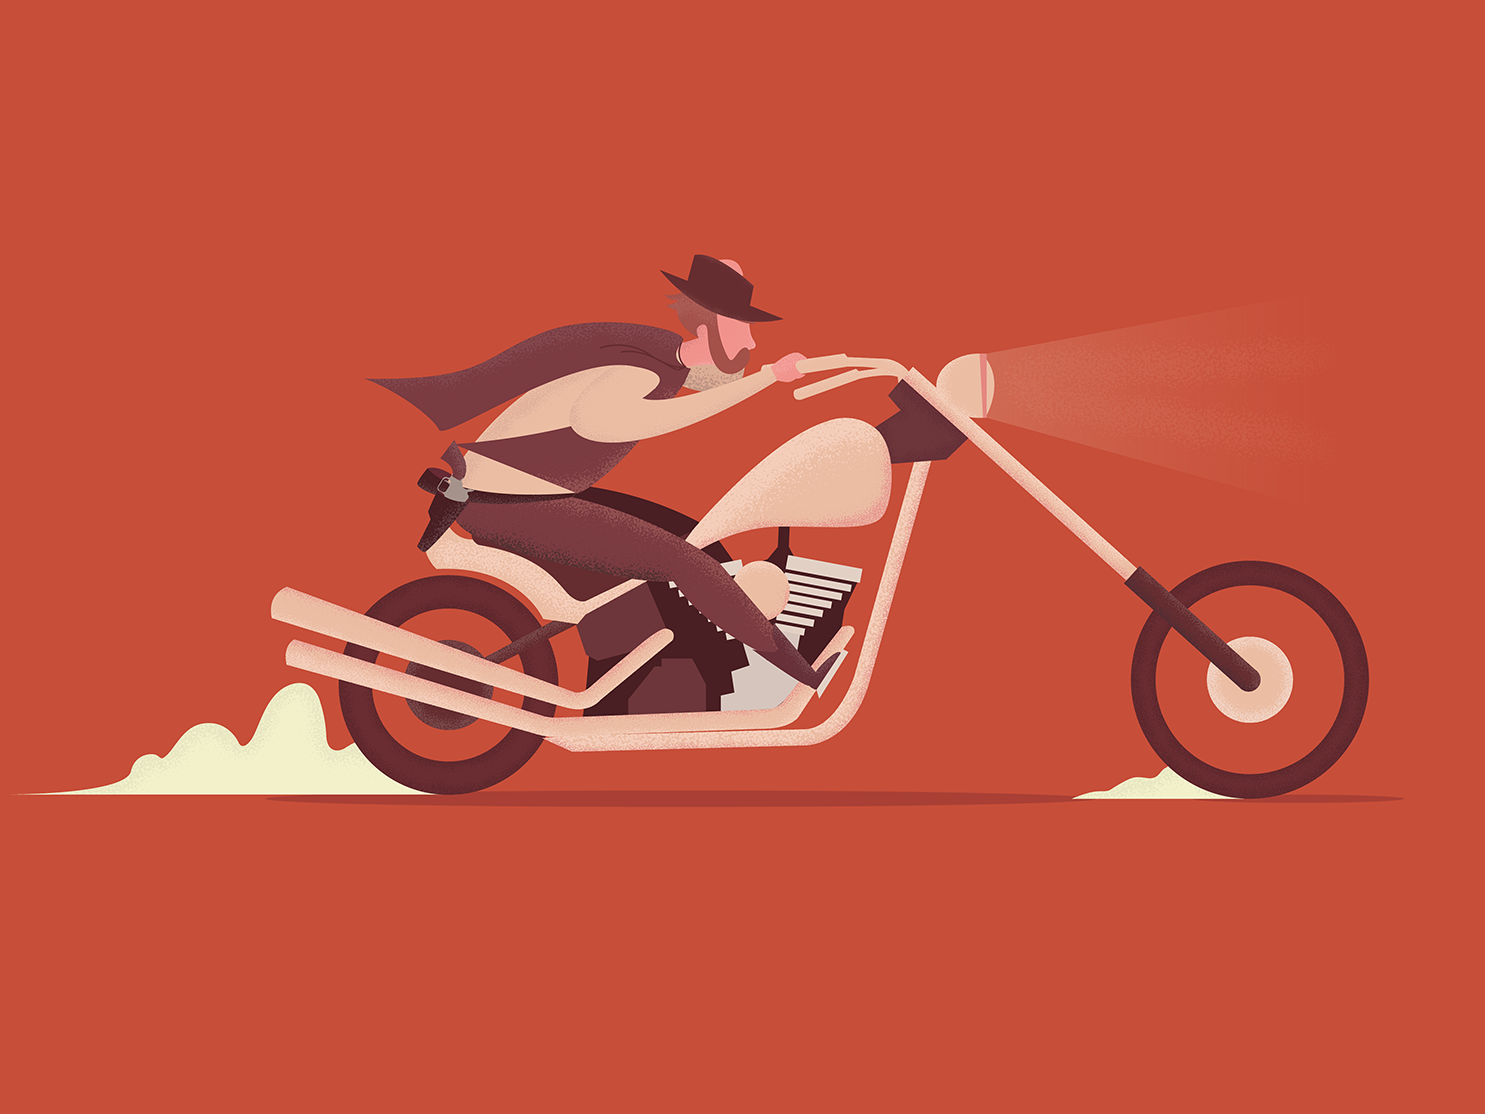 Howdy design vector cowboy illustration character motorcycle